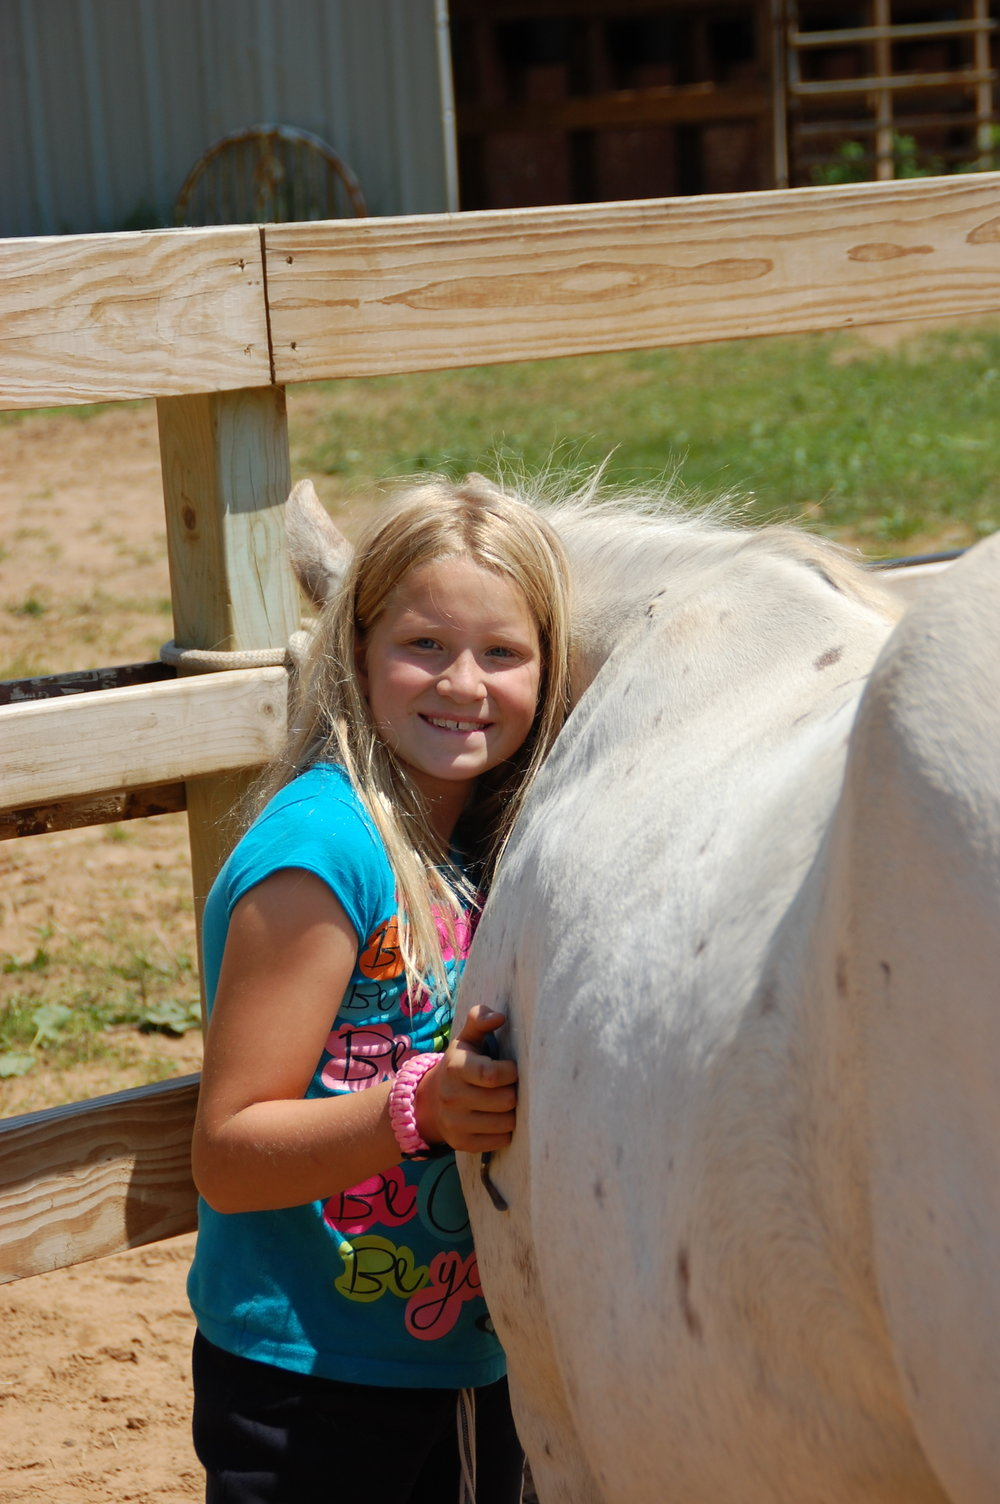 Trailblazer & Explorer campers with a love for horses can sign up for the rough riders horse elective to learn the basics of western riding, grooming, saddling and horse care while hanging out with new friends and friendly horses.   Space is limited to 8 campers per week.